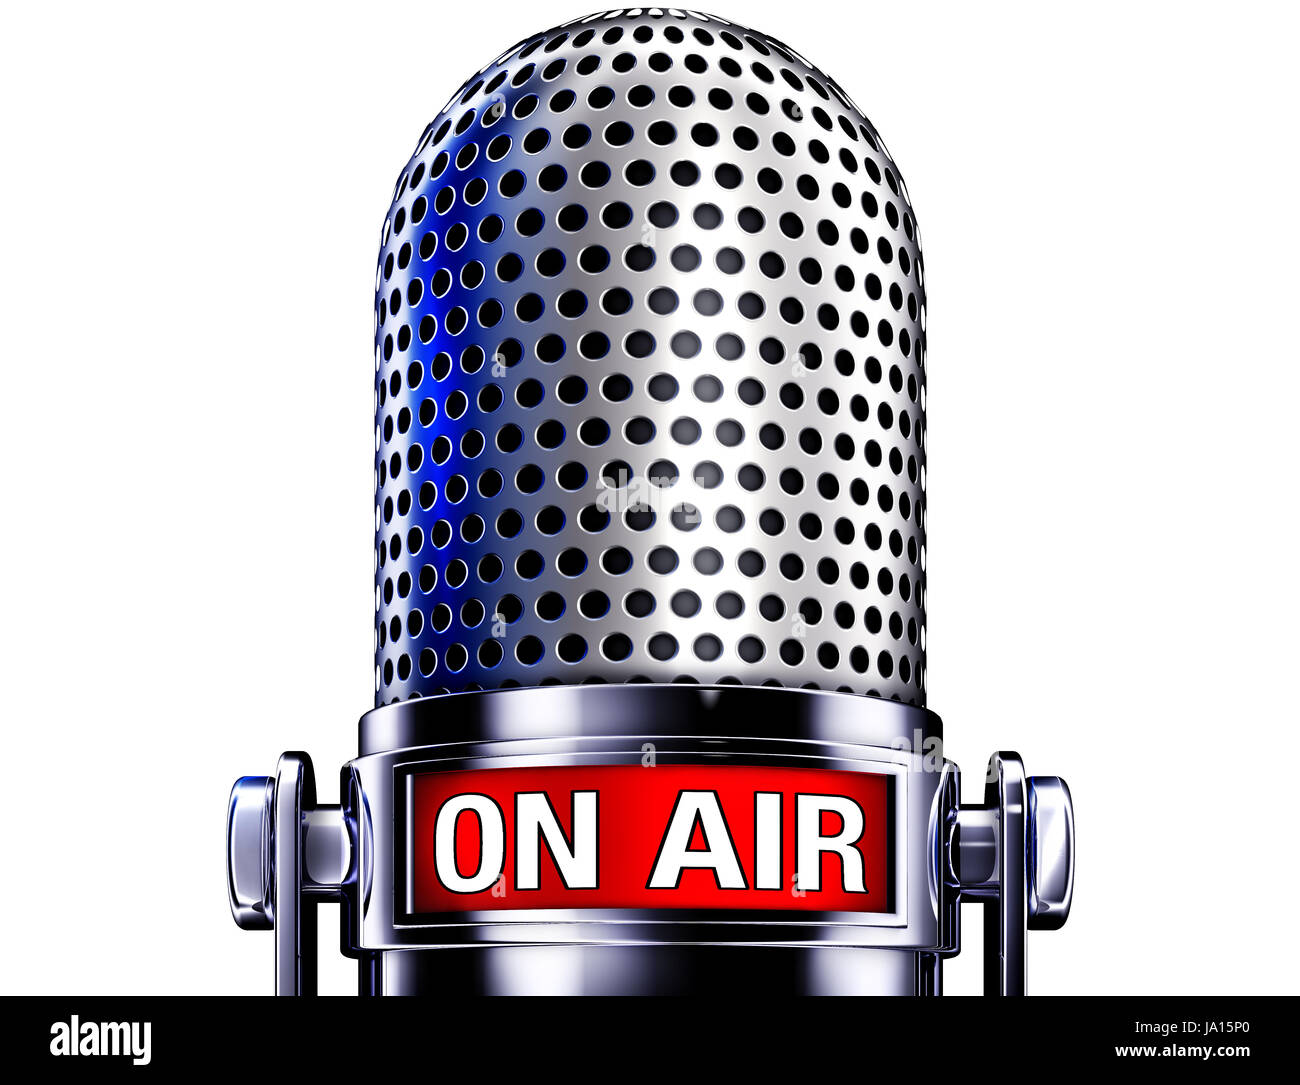 on air microphone Stock Photo